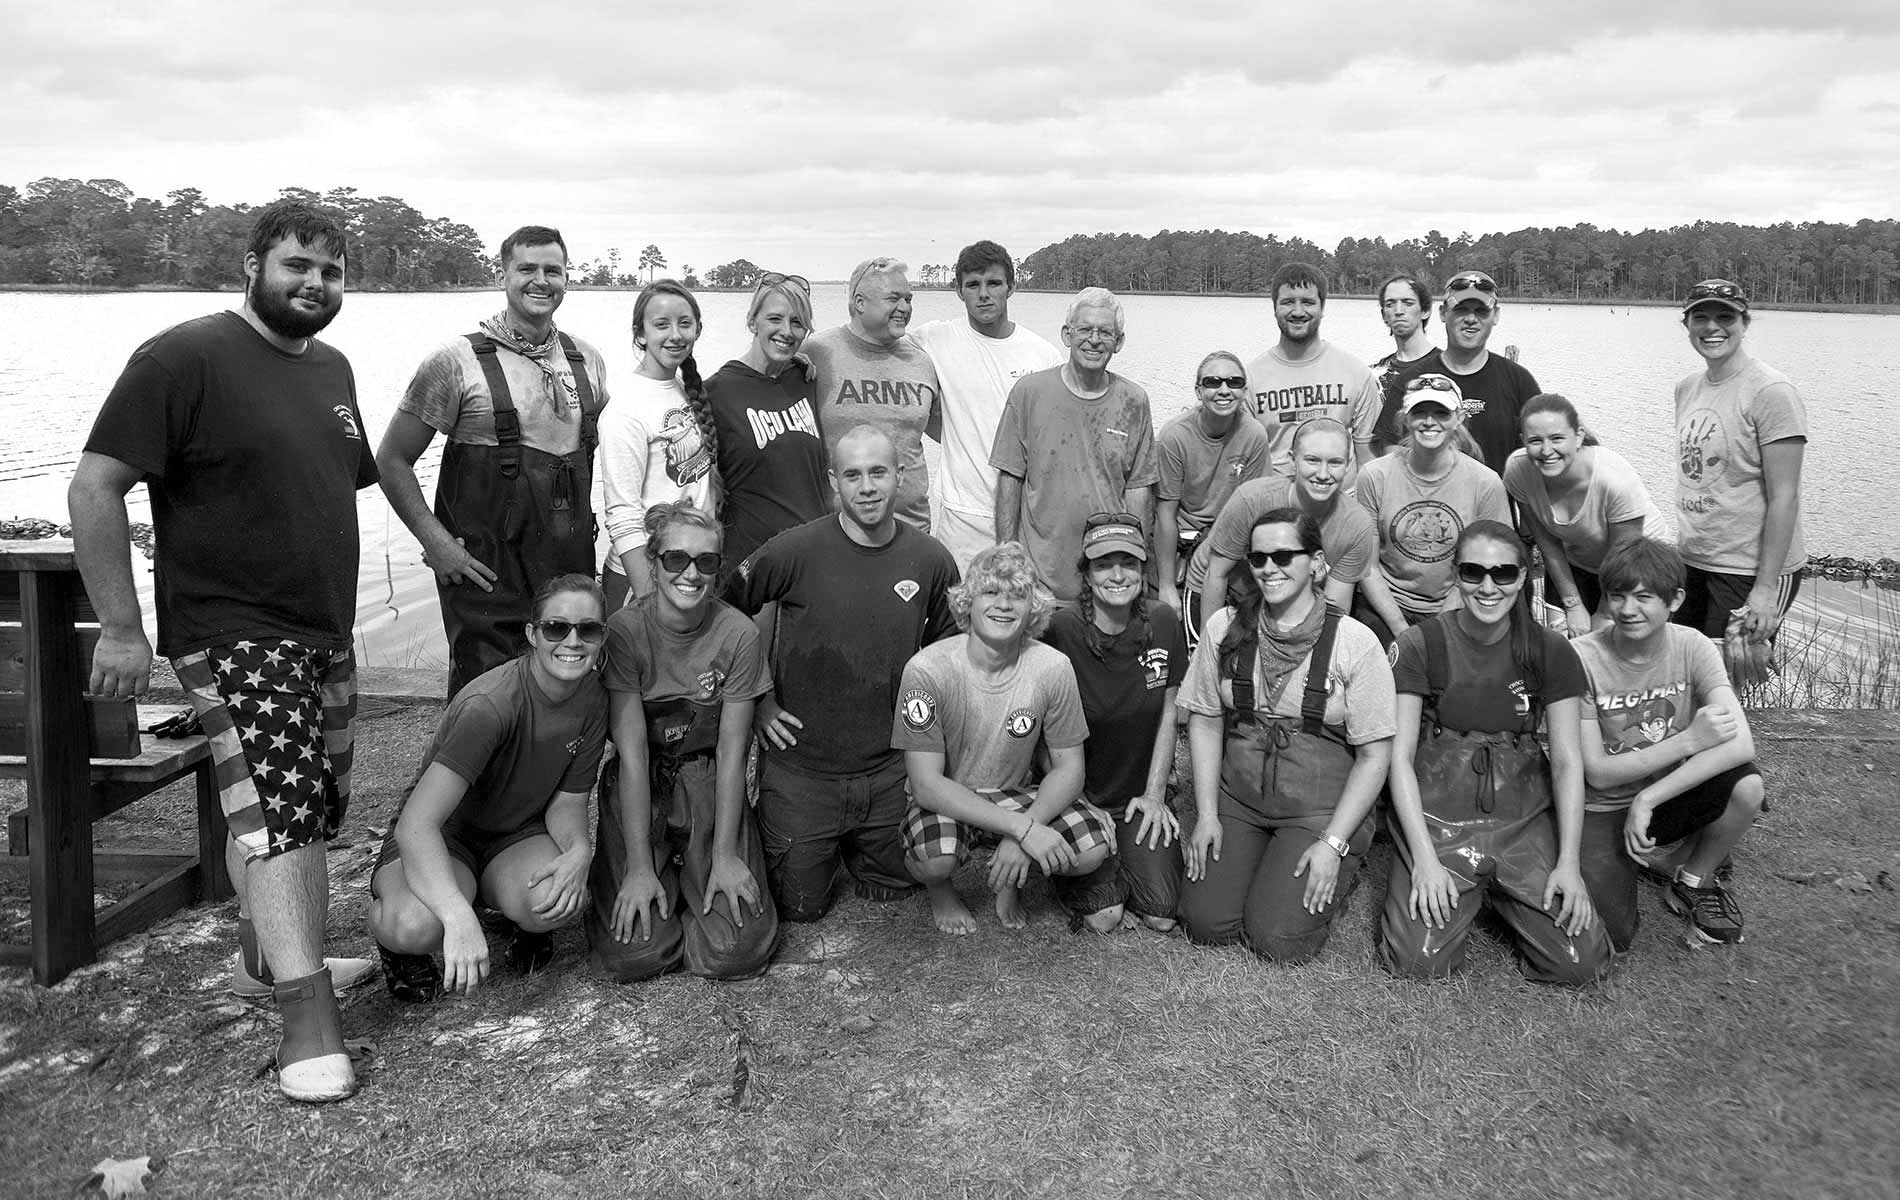 The Choctawhatchee Basin Alliance, a 2015 grant finalist